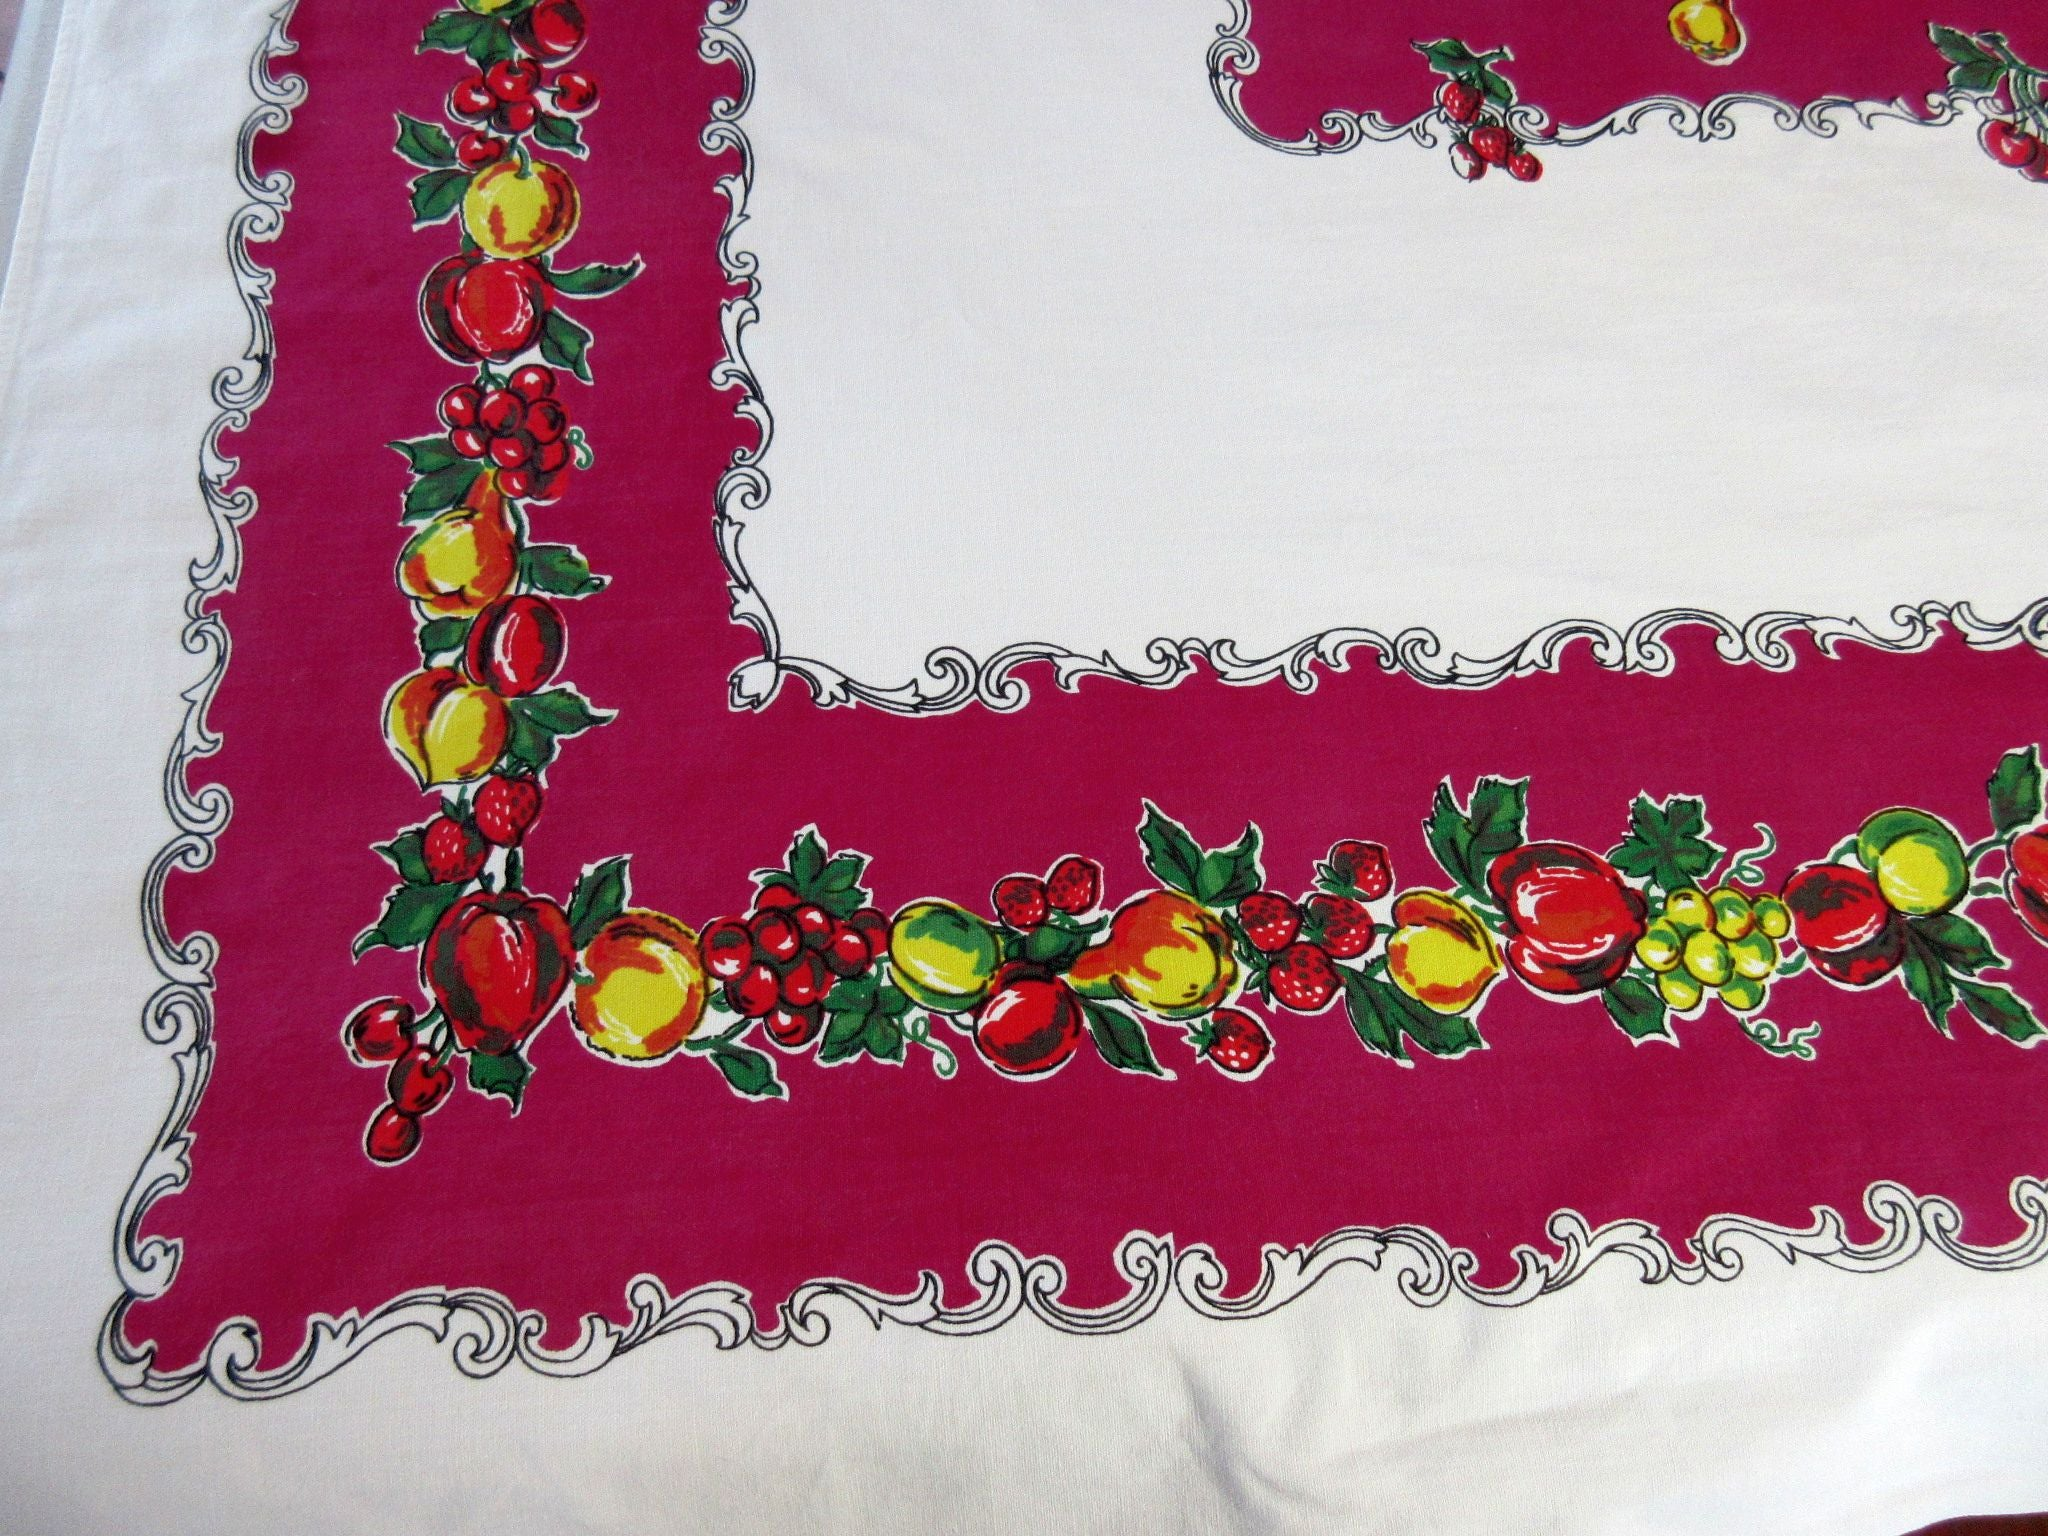 Primary Fruit Swirls on Magenta Vintage Printed Tablecloth (63 X 53)